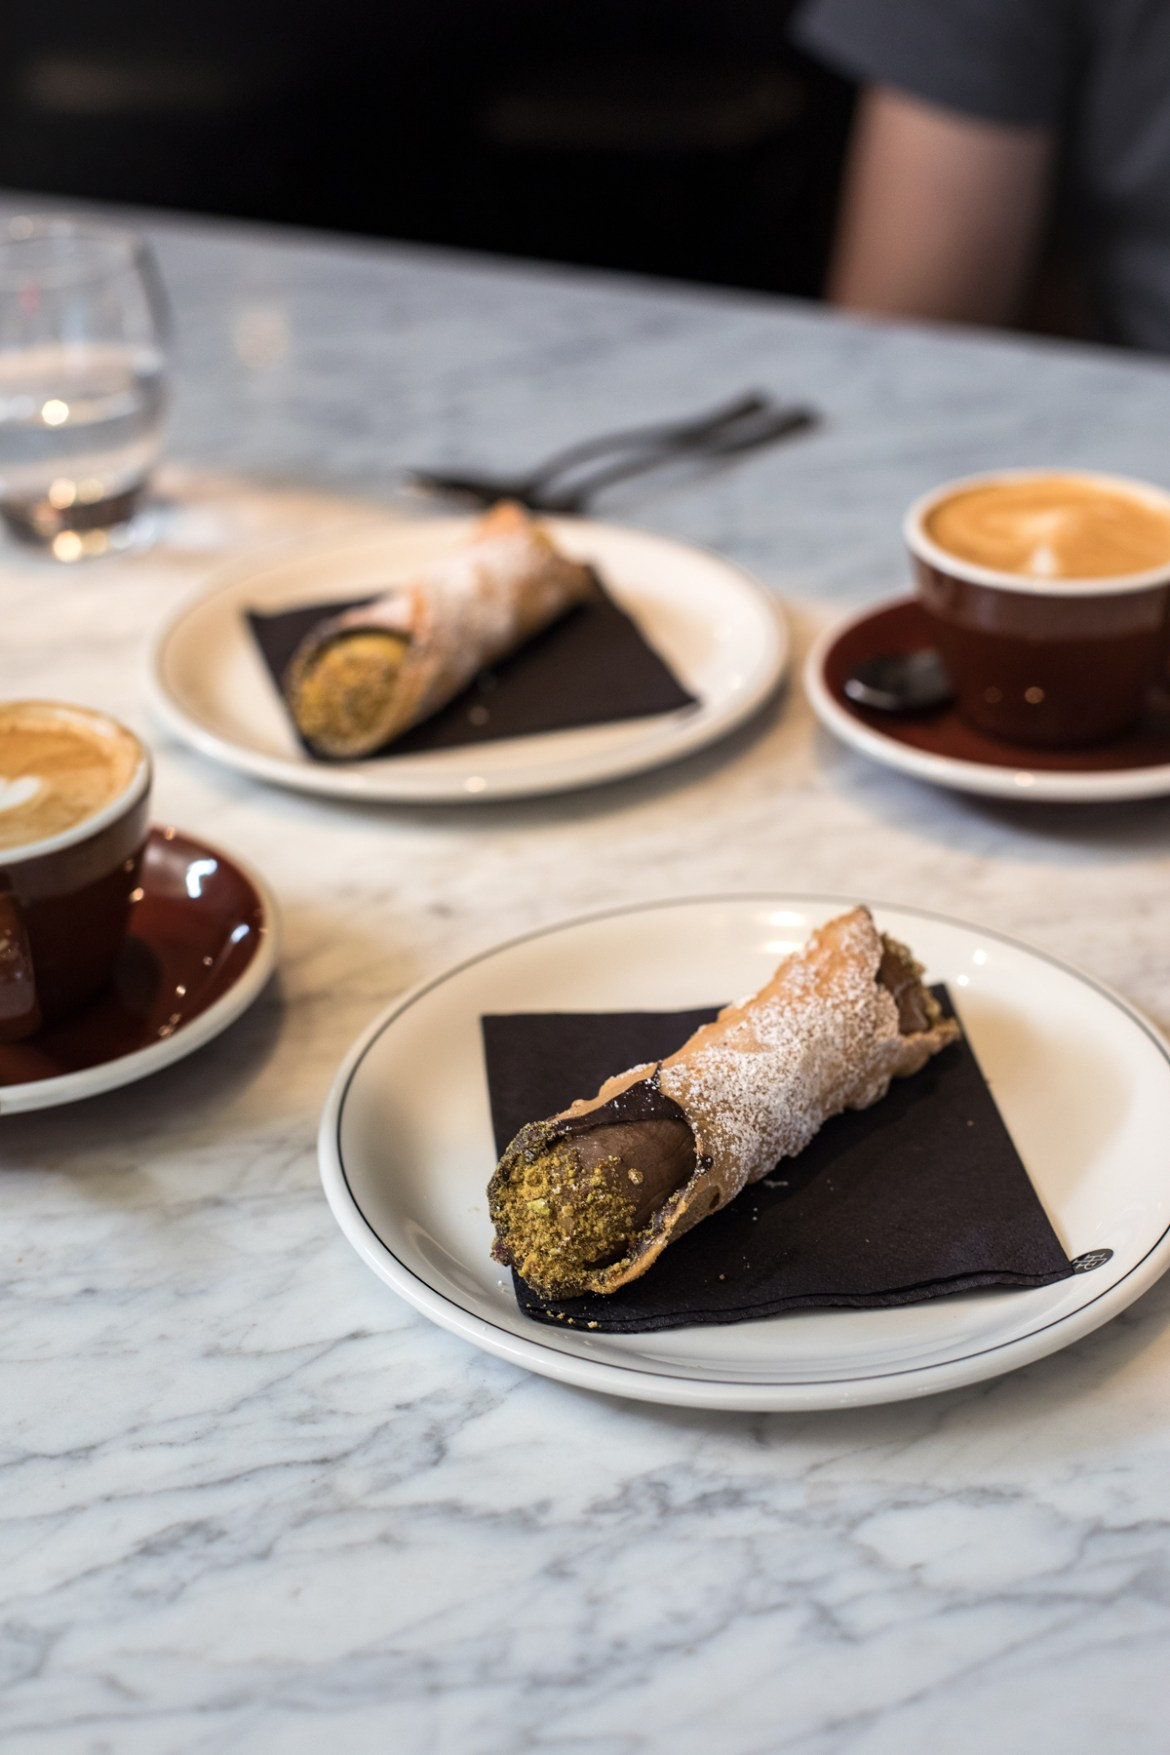 Cannoli and coffee at Gazette in Print Hall in Perth for the express lunch special as a part of Spring in the City festival